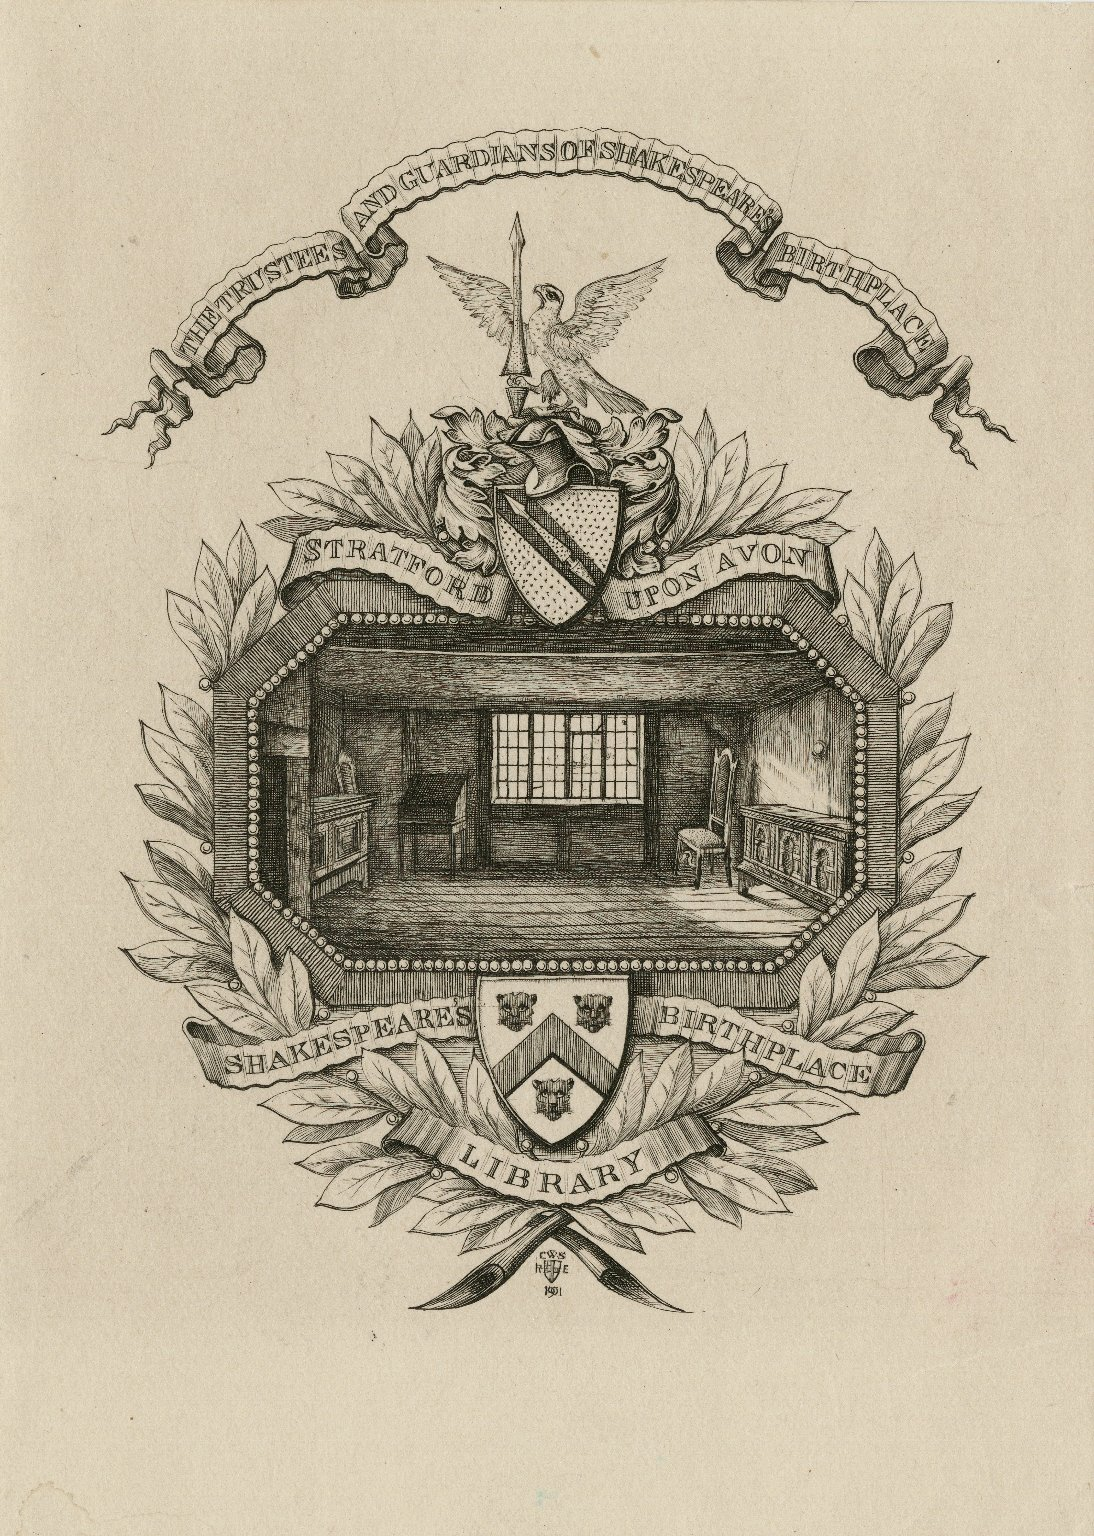 The trustees and guardians of Shakespeare's birthplace, Stratford upon Avon, Shakespeare's birthplace library [graphic] / C.W.S., R.E., 1901.